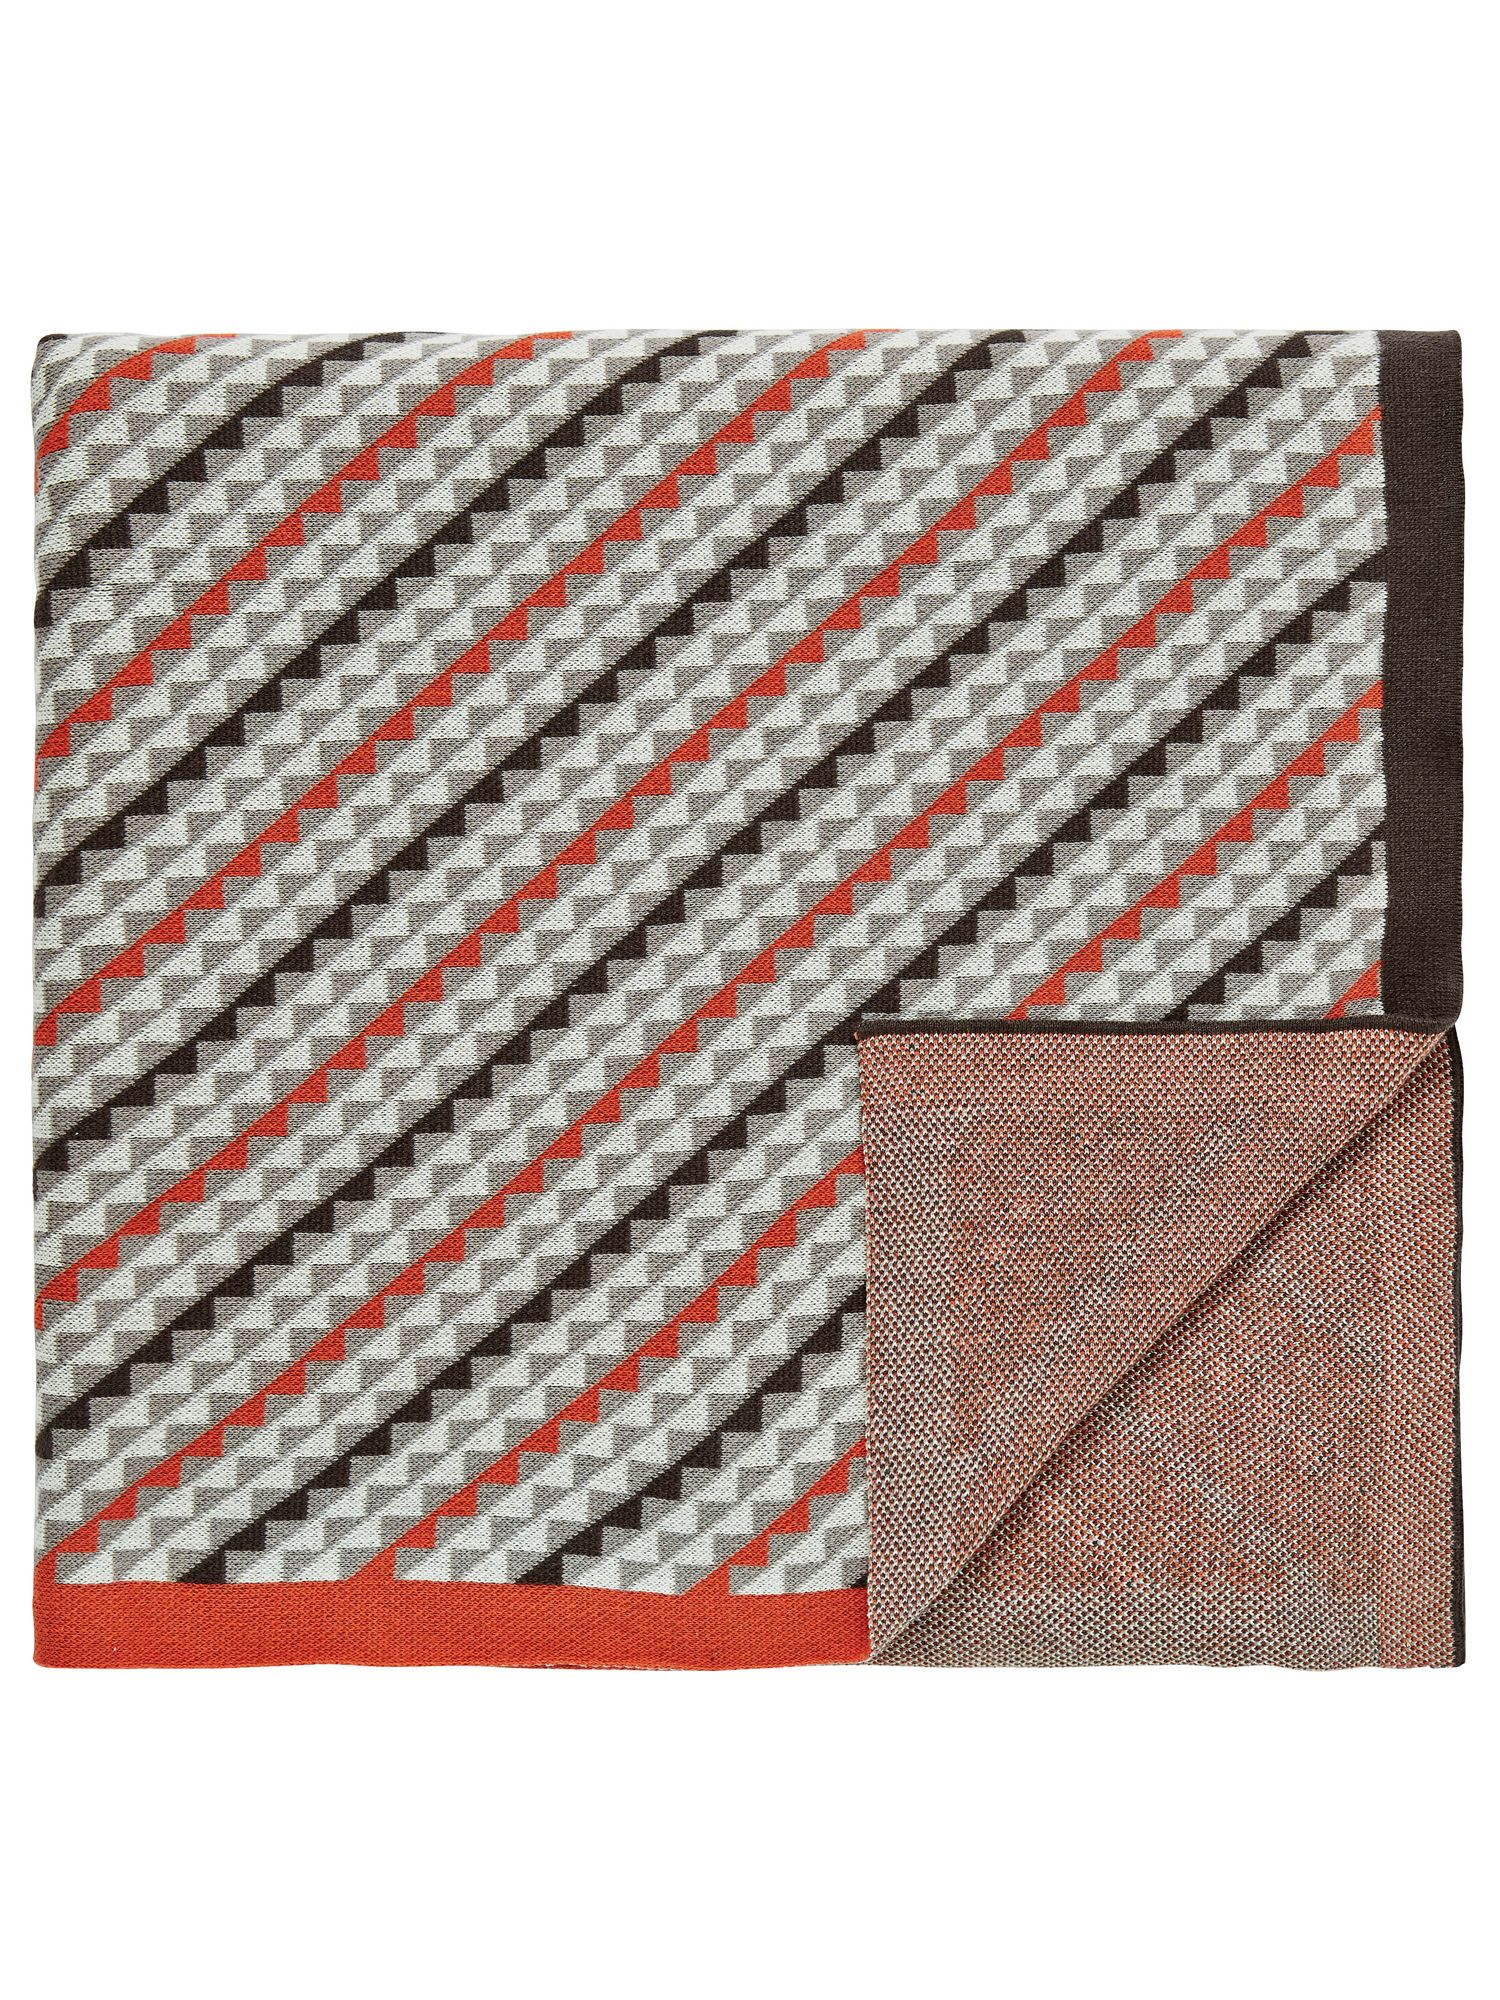 Bedeck 1951 Bedeck 1951 Soto knitted throw 150x200cm charcoal